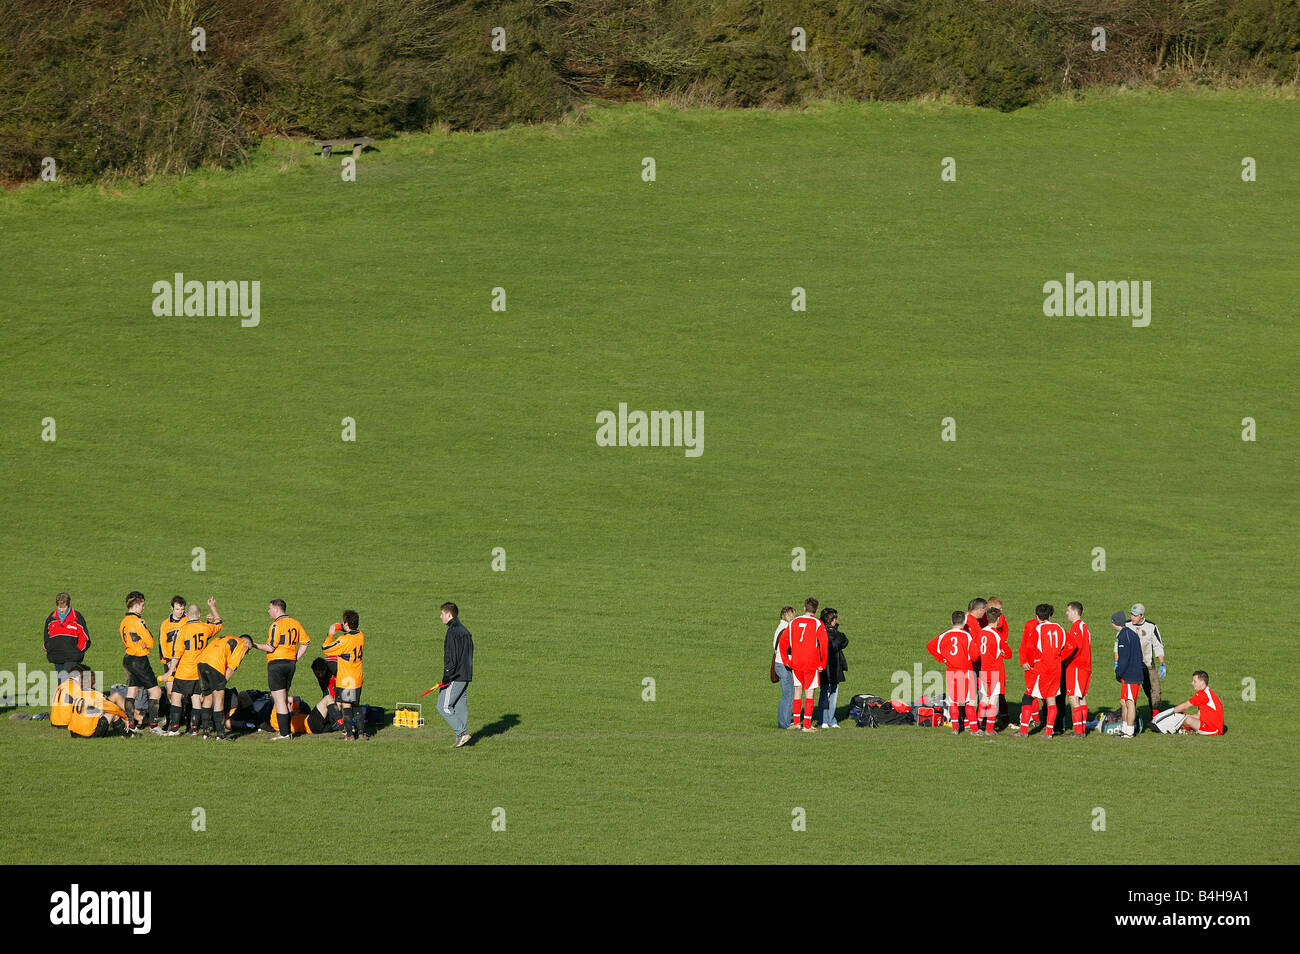 Two Sunday league football teams prepare for a penalty shoot out. - Stock Image